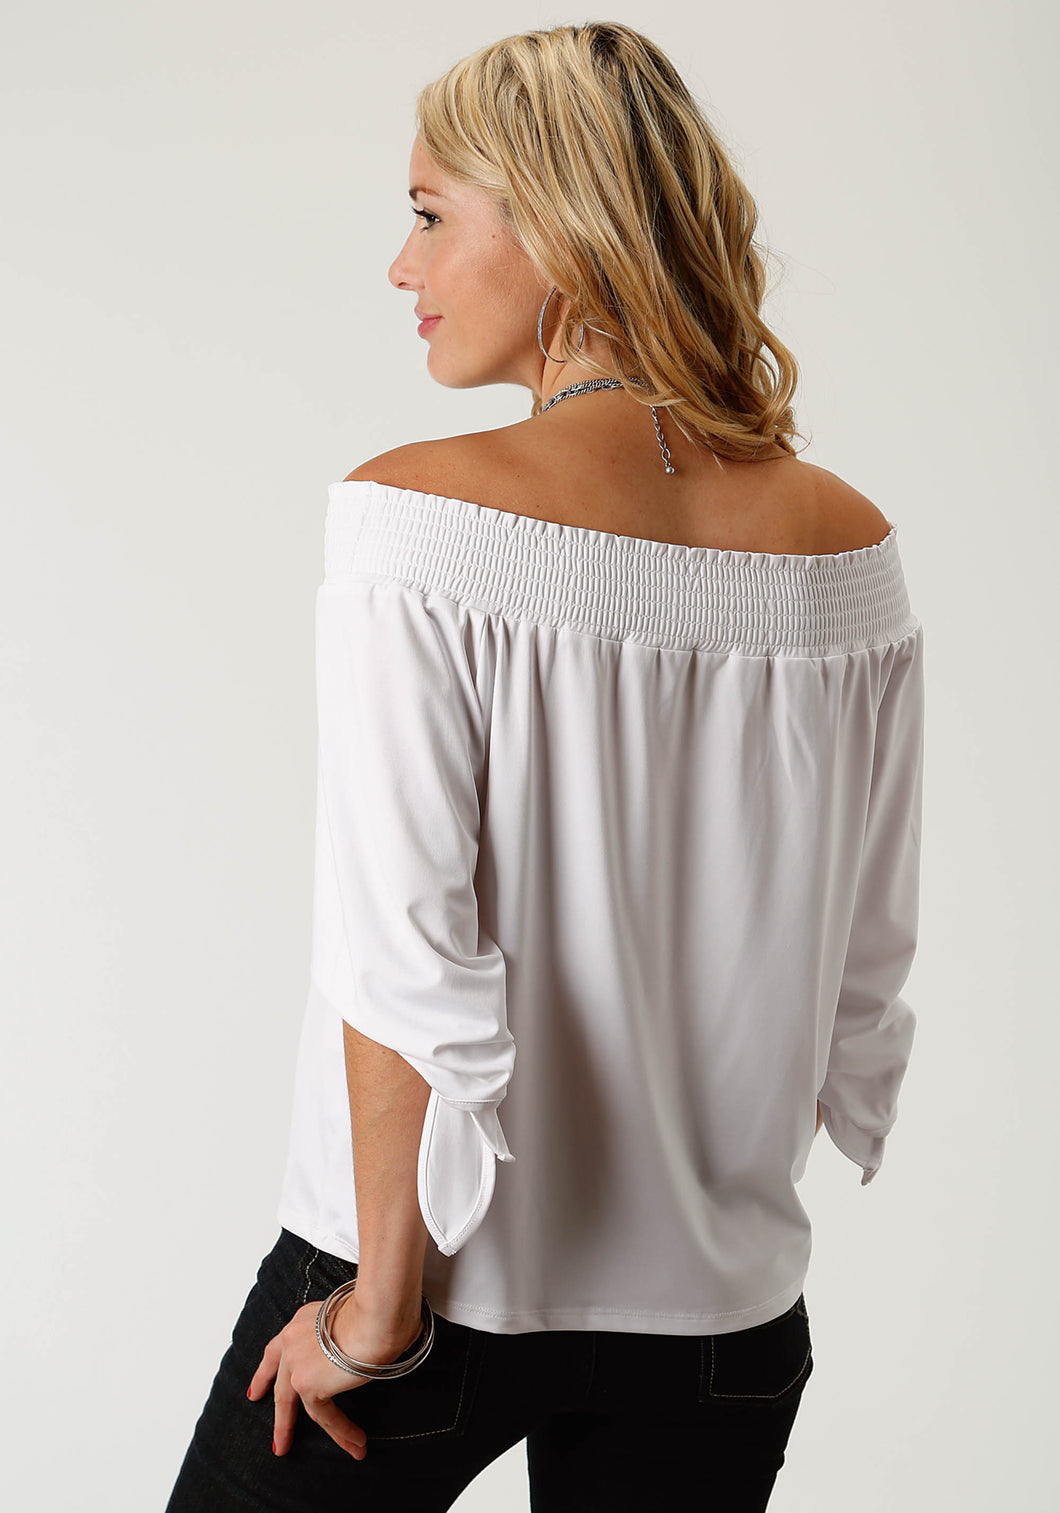 Studio West- Garden Paradise Swest Womens Long Sleeve Shirt 1770 Poly Spandex Jersey Off Shoulder